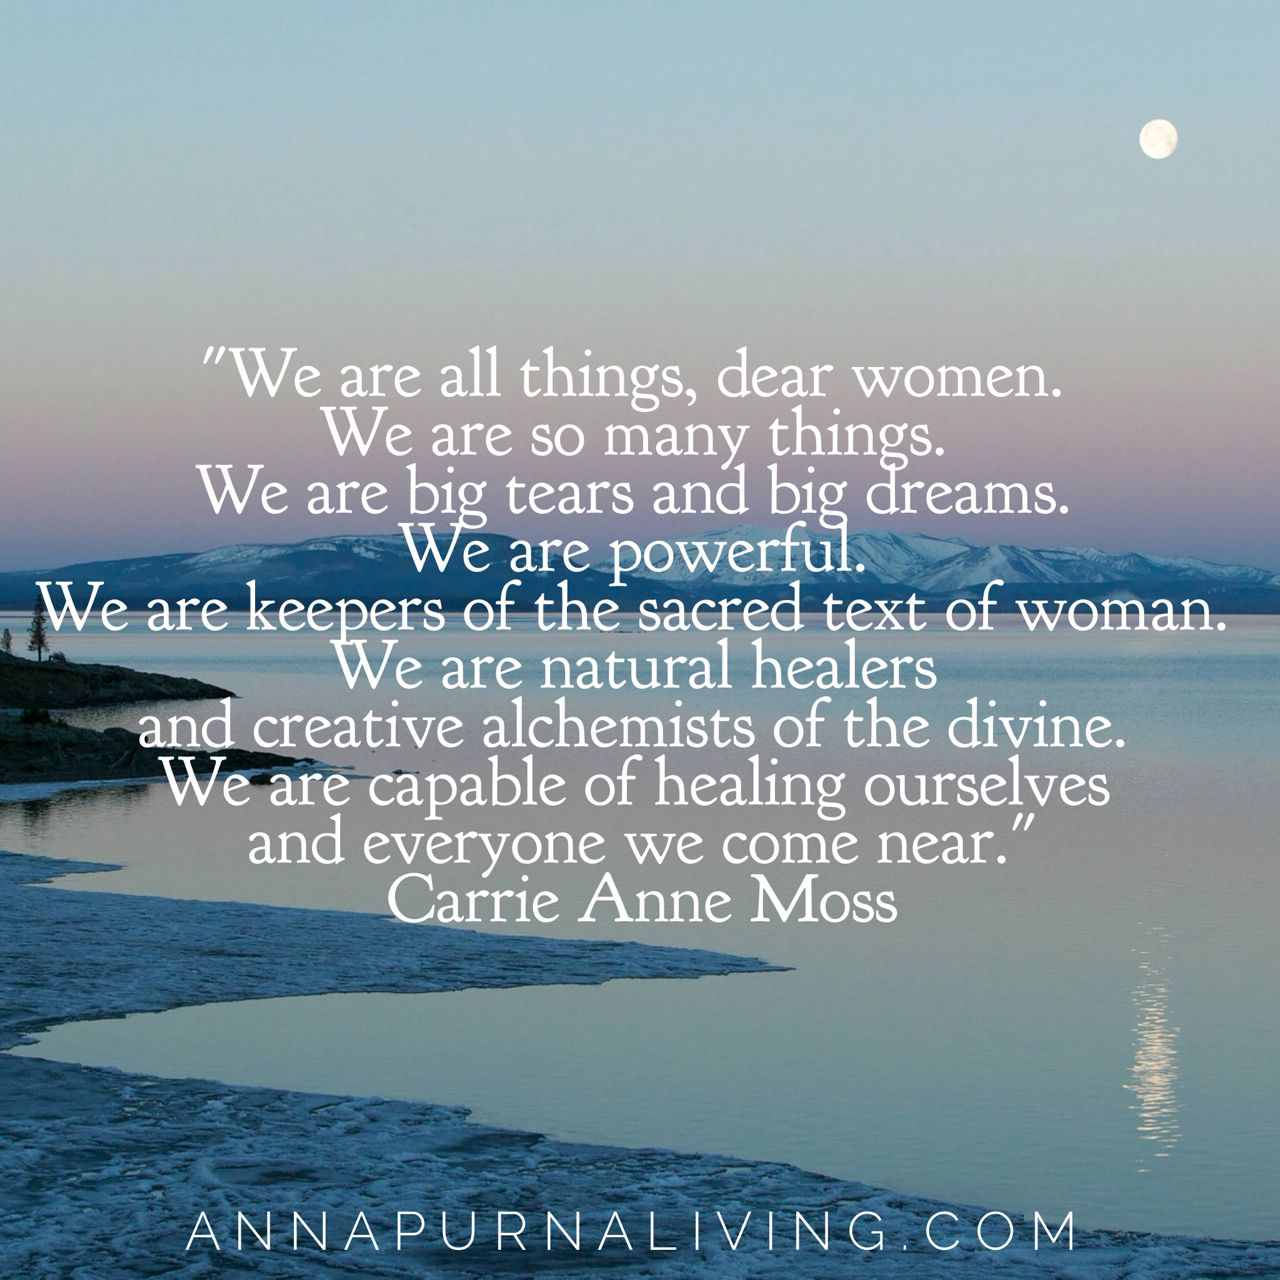 Dear Women via #AnnapurnaLiving